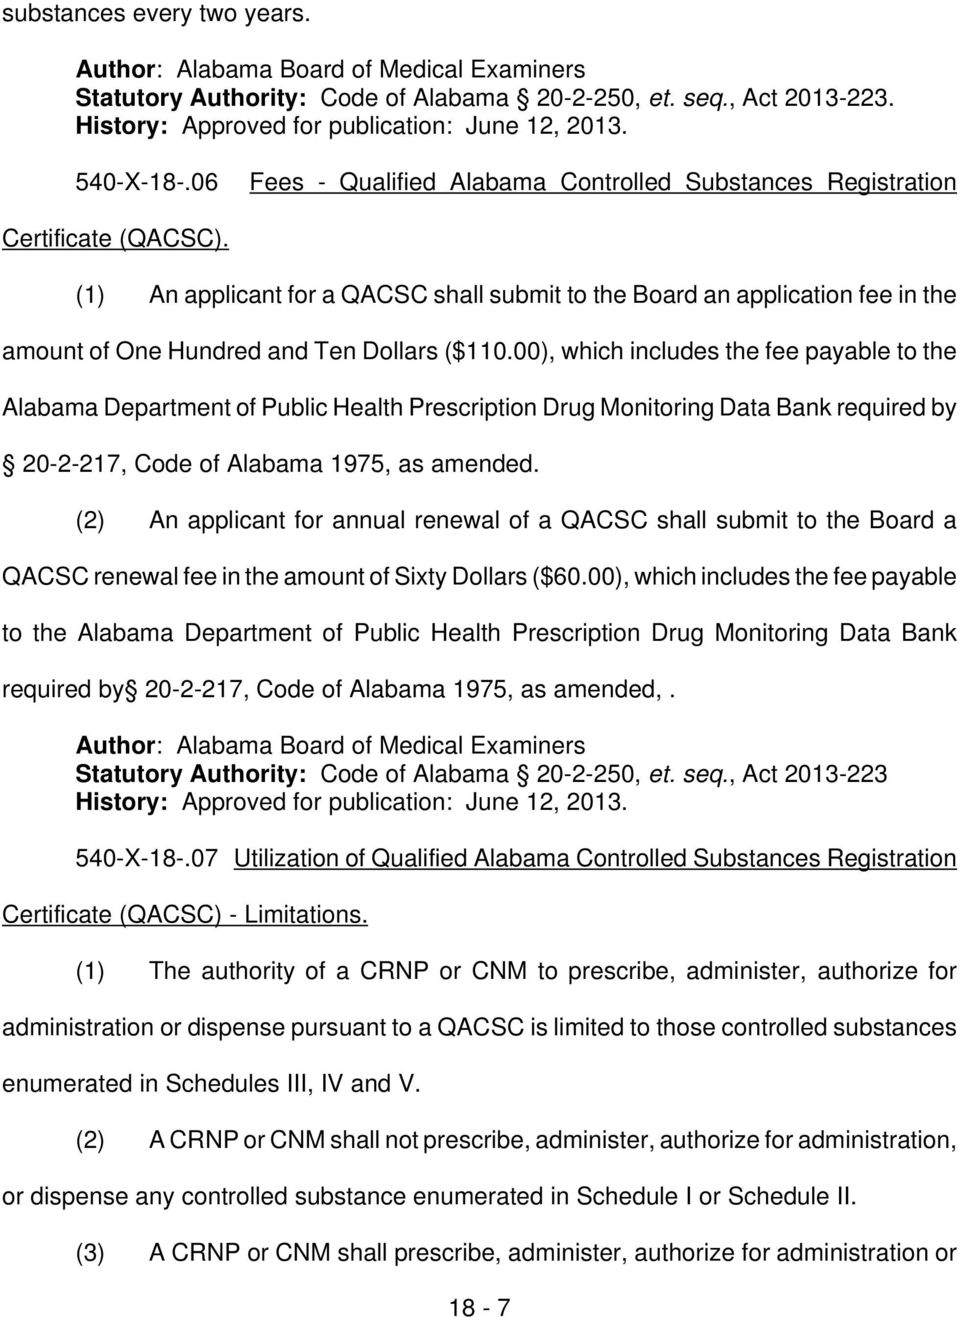 00), which includes the fee payable to the Alabama Department of Public Health Prescription Drug Monitoring Data Bank required by 20-2-217, Code of Alabama 1975, as amended.